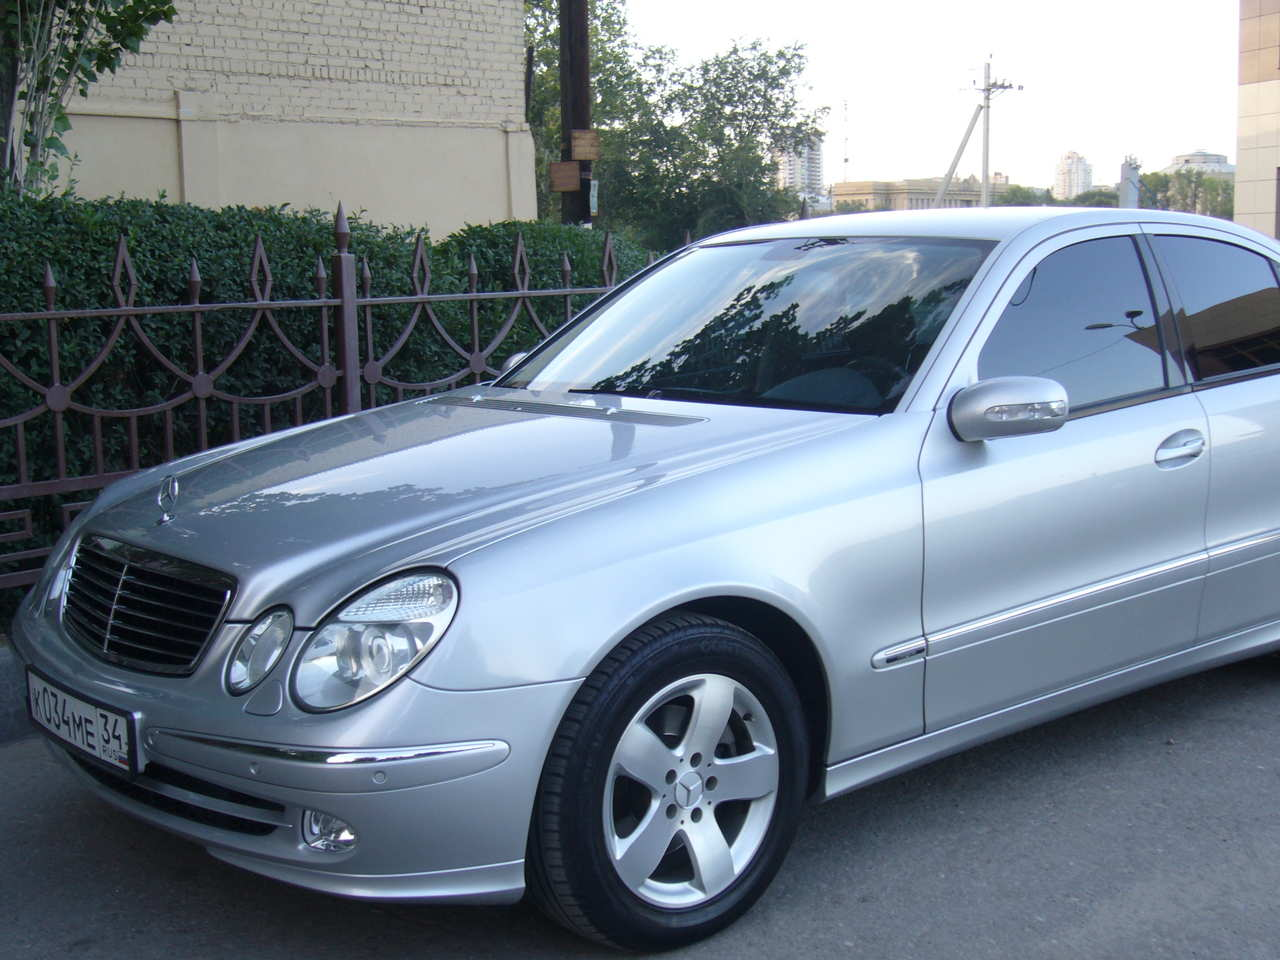 2005 Mercedes Benz E Class Photos 2 0 Gasoline Fr Or Rr